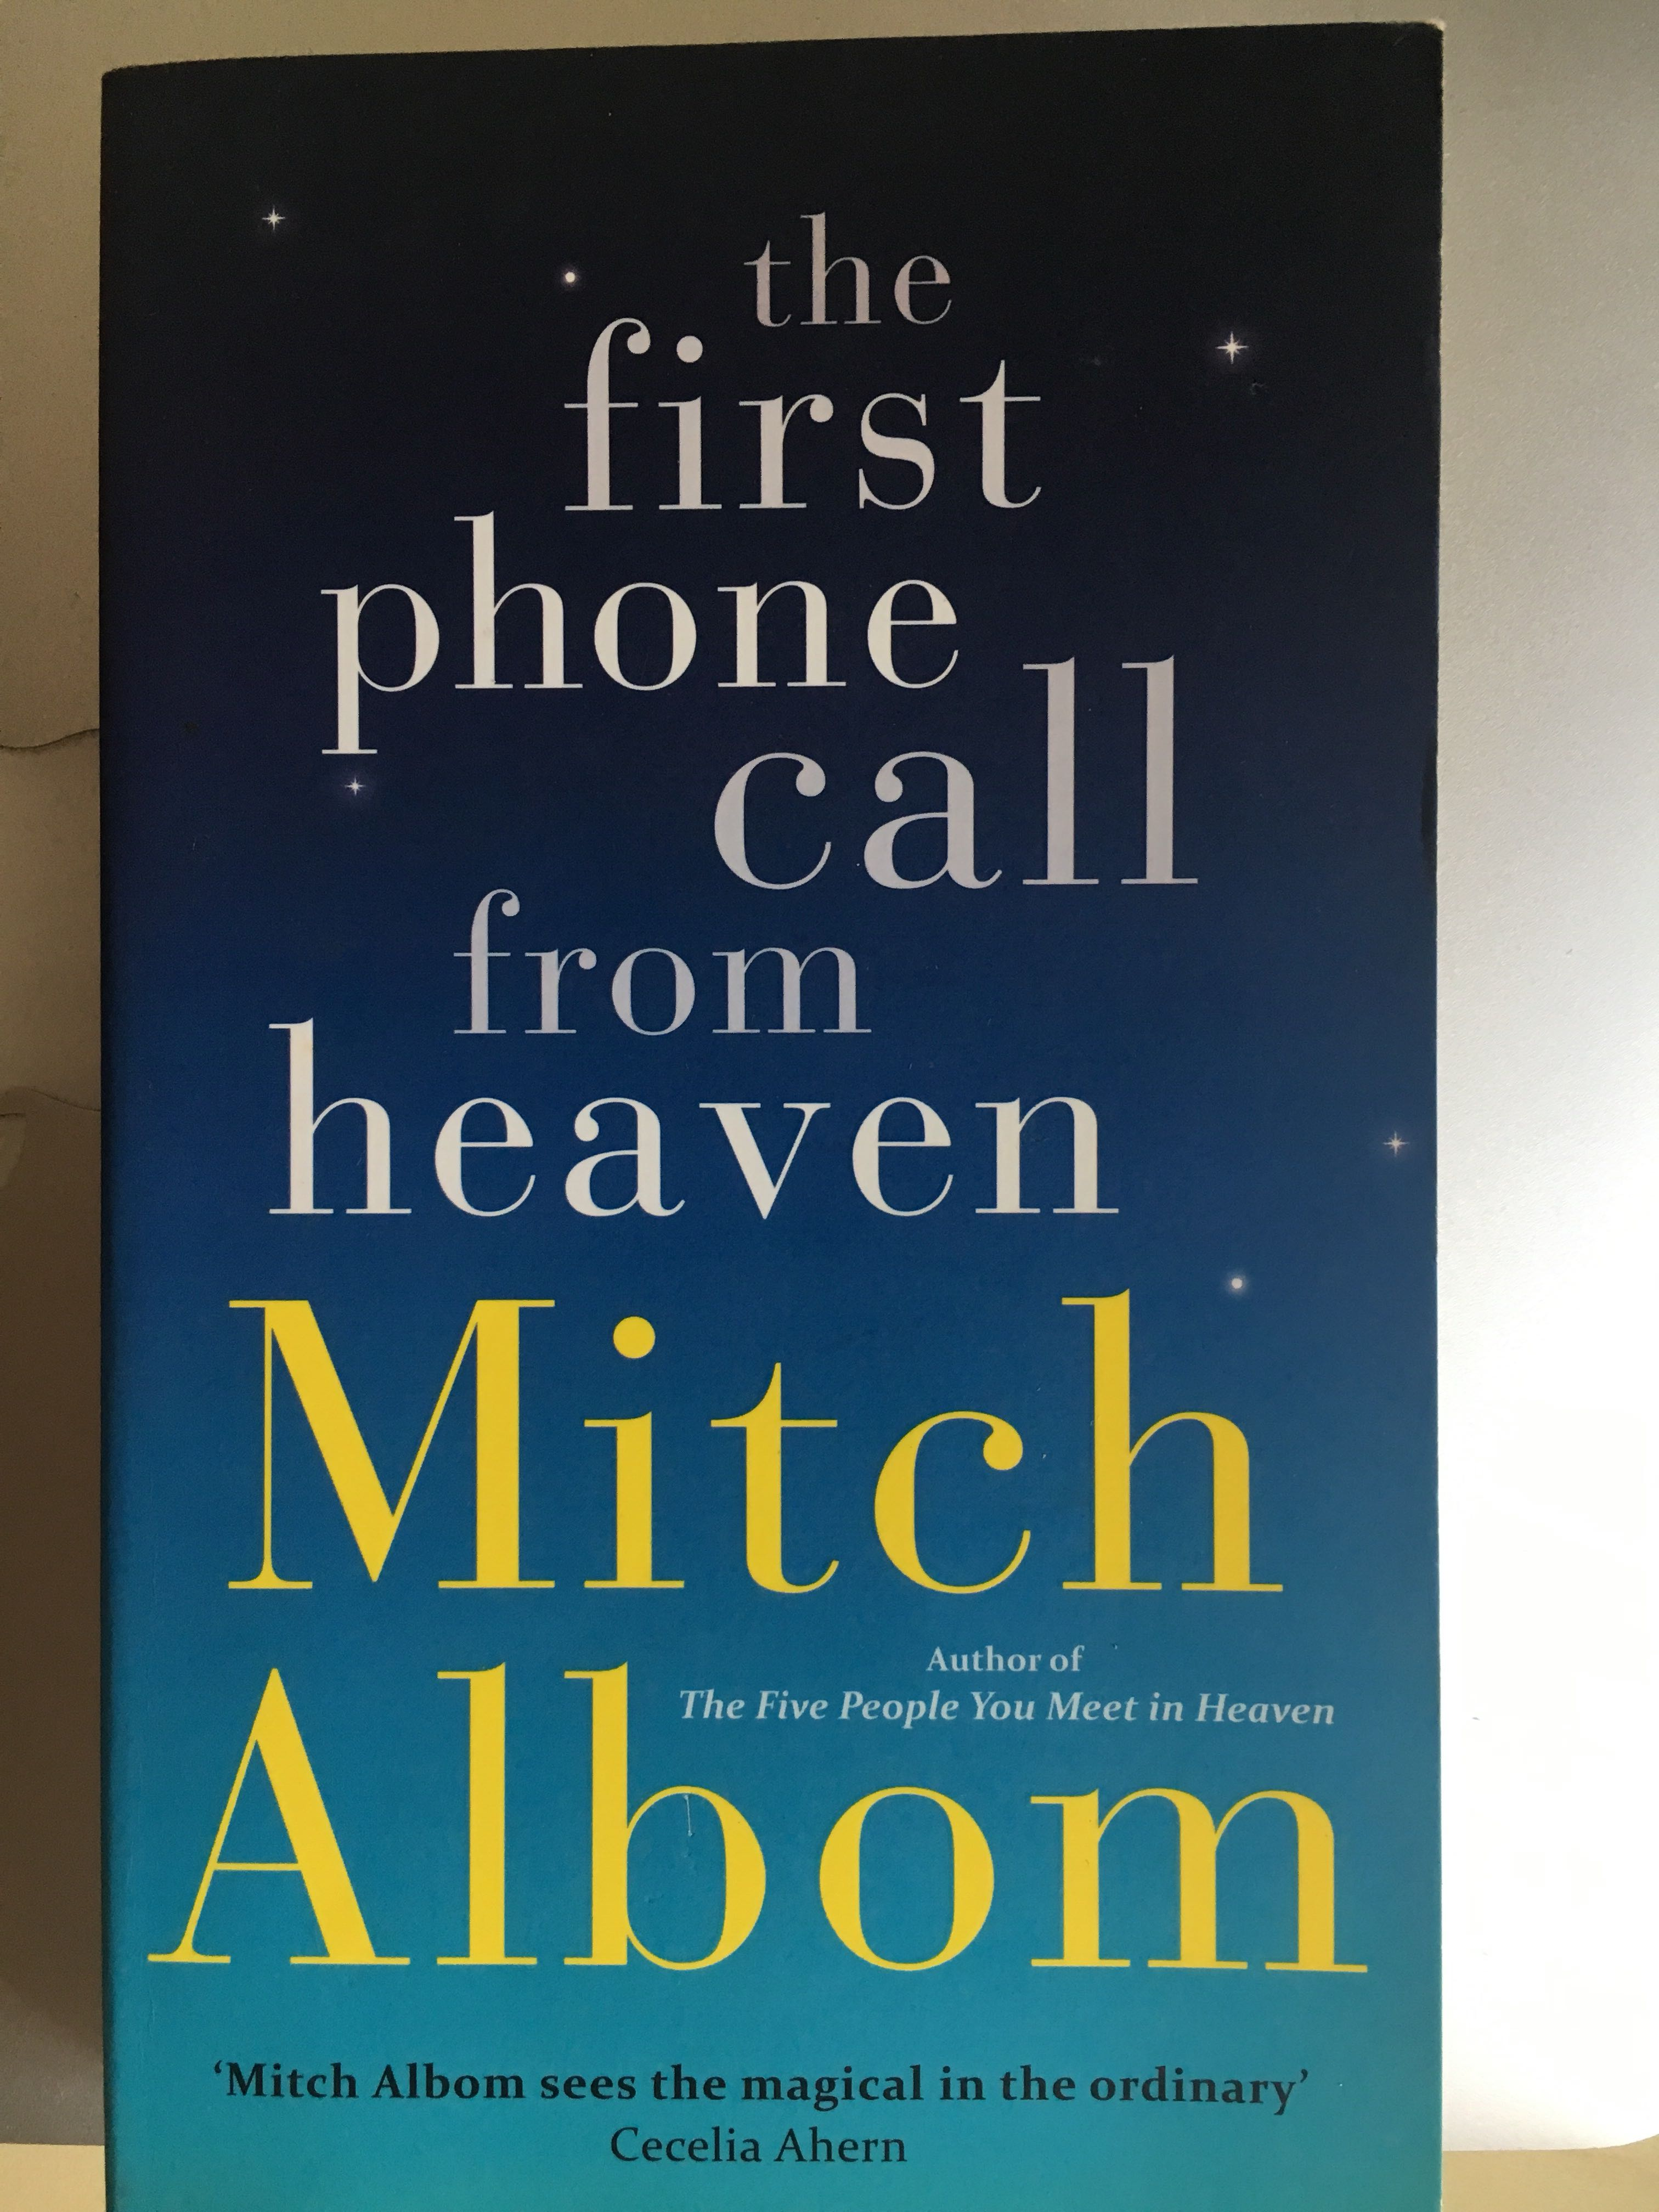 The First Phone Call from Heaven: A Novel